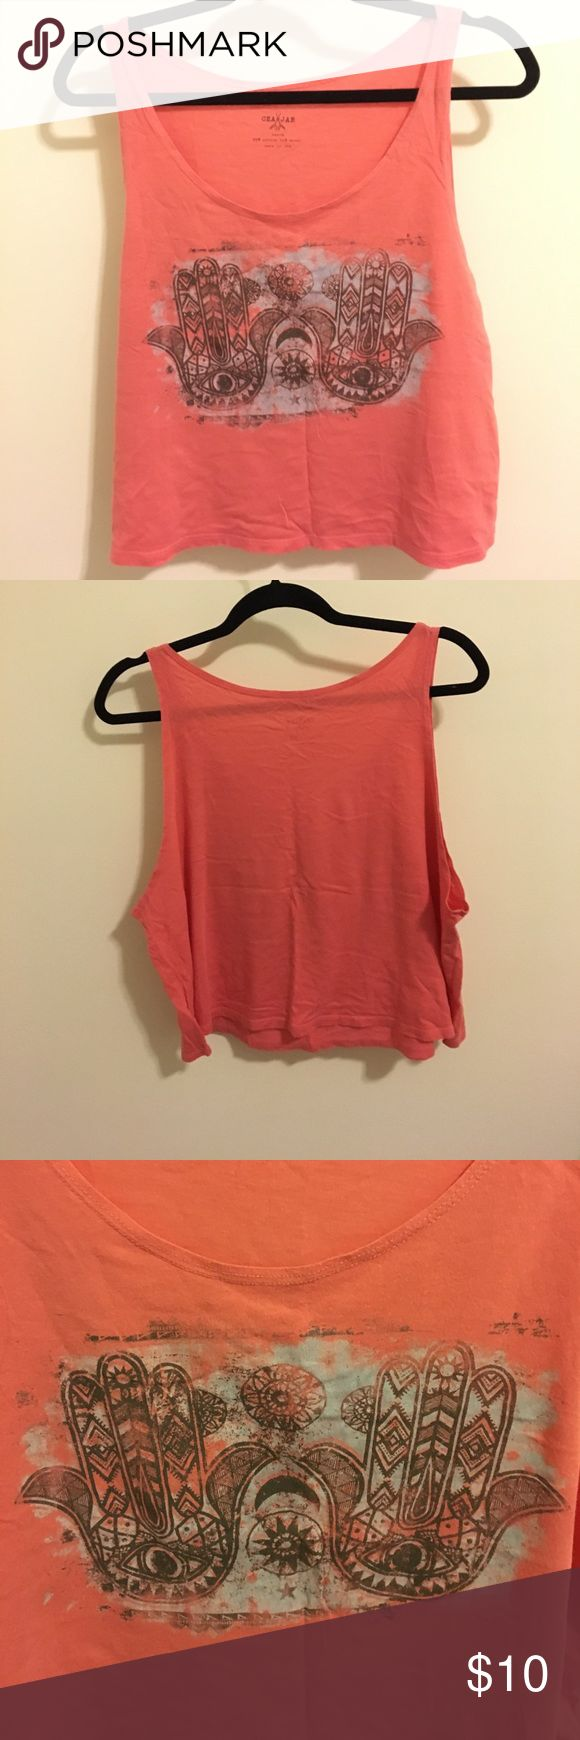 Urban Outfitters Cea Jae Hamsa Tank No longer available from original retailer. Very cute with a sweater and leggings! Urban Outfitters Tops Tank Tops